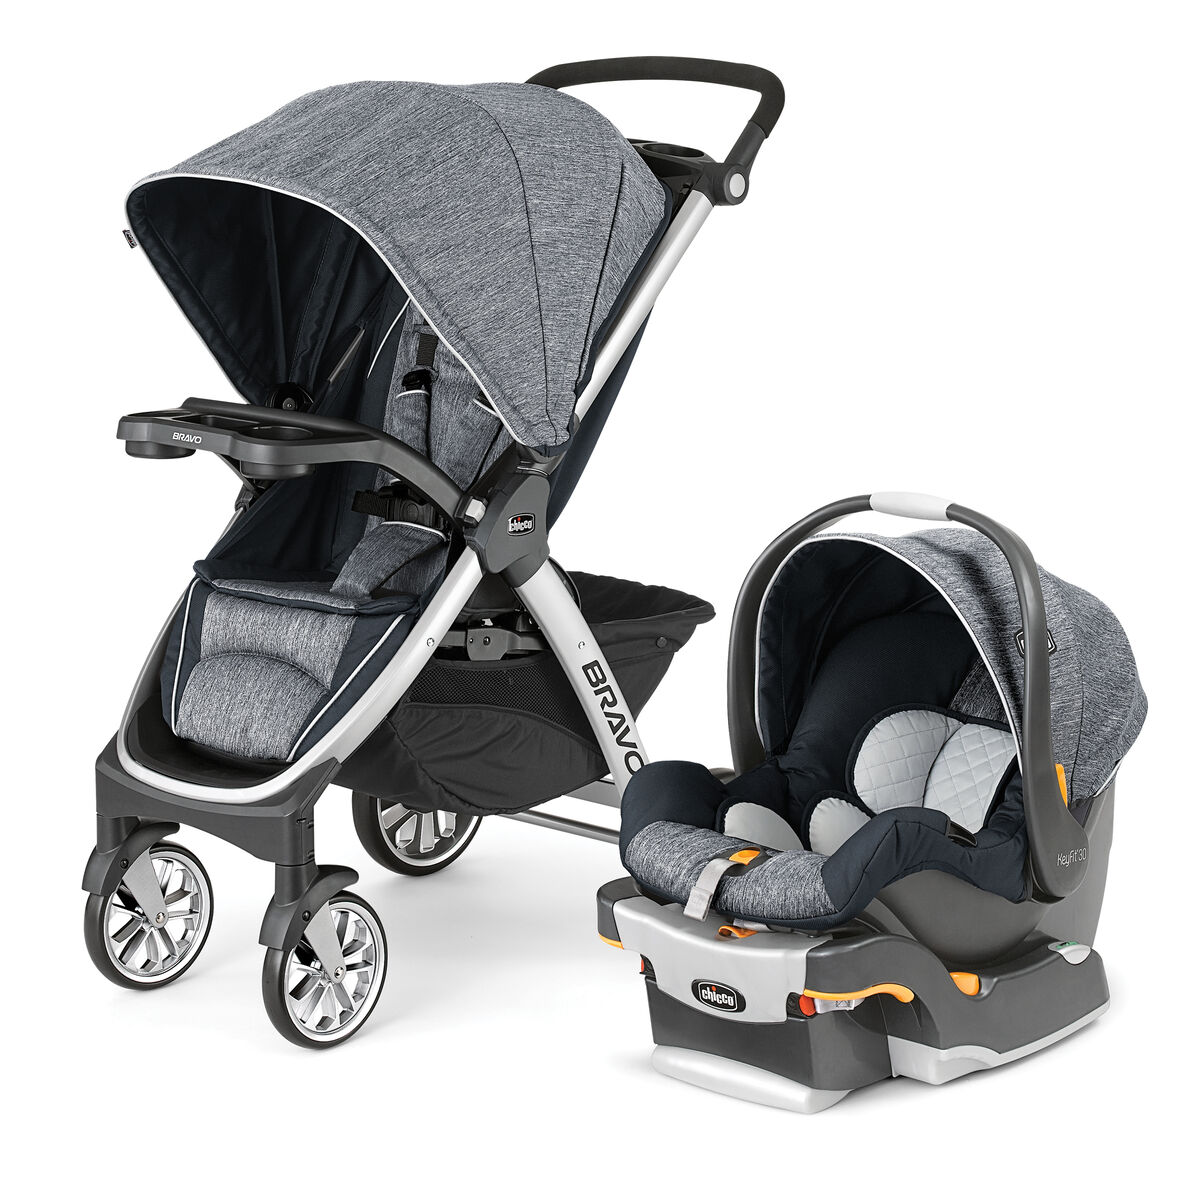 Car Seats. Dare To Compare tfo-mb-nbf. Target-Baby. Car Seats. Product - Jeep Car Seat Travel Bag. Product Image. Price $ Out of stock. Product Title. Items sold by giveback.cf that are marked eligible on the product and checkout page with the logo ;.